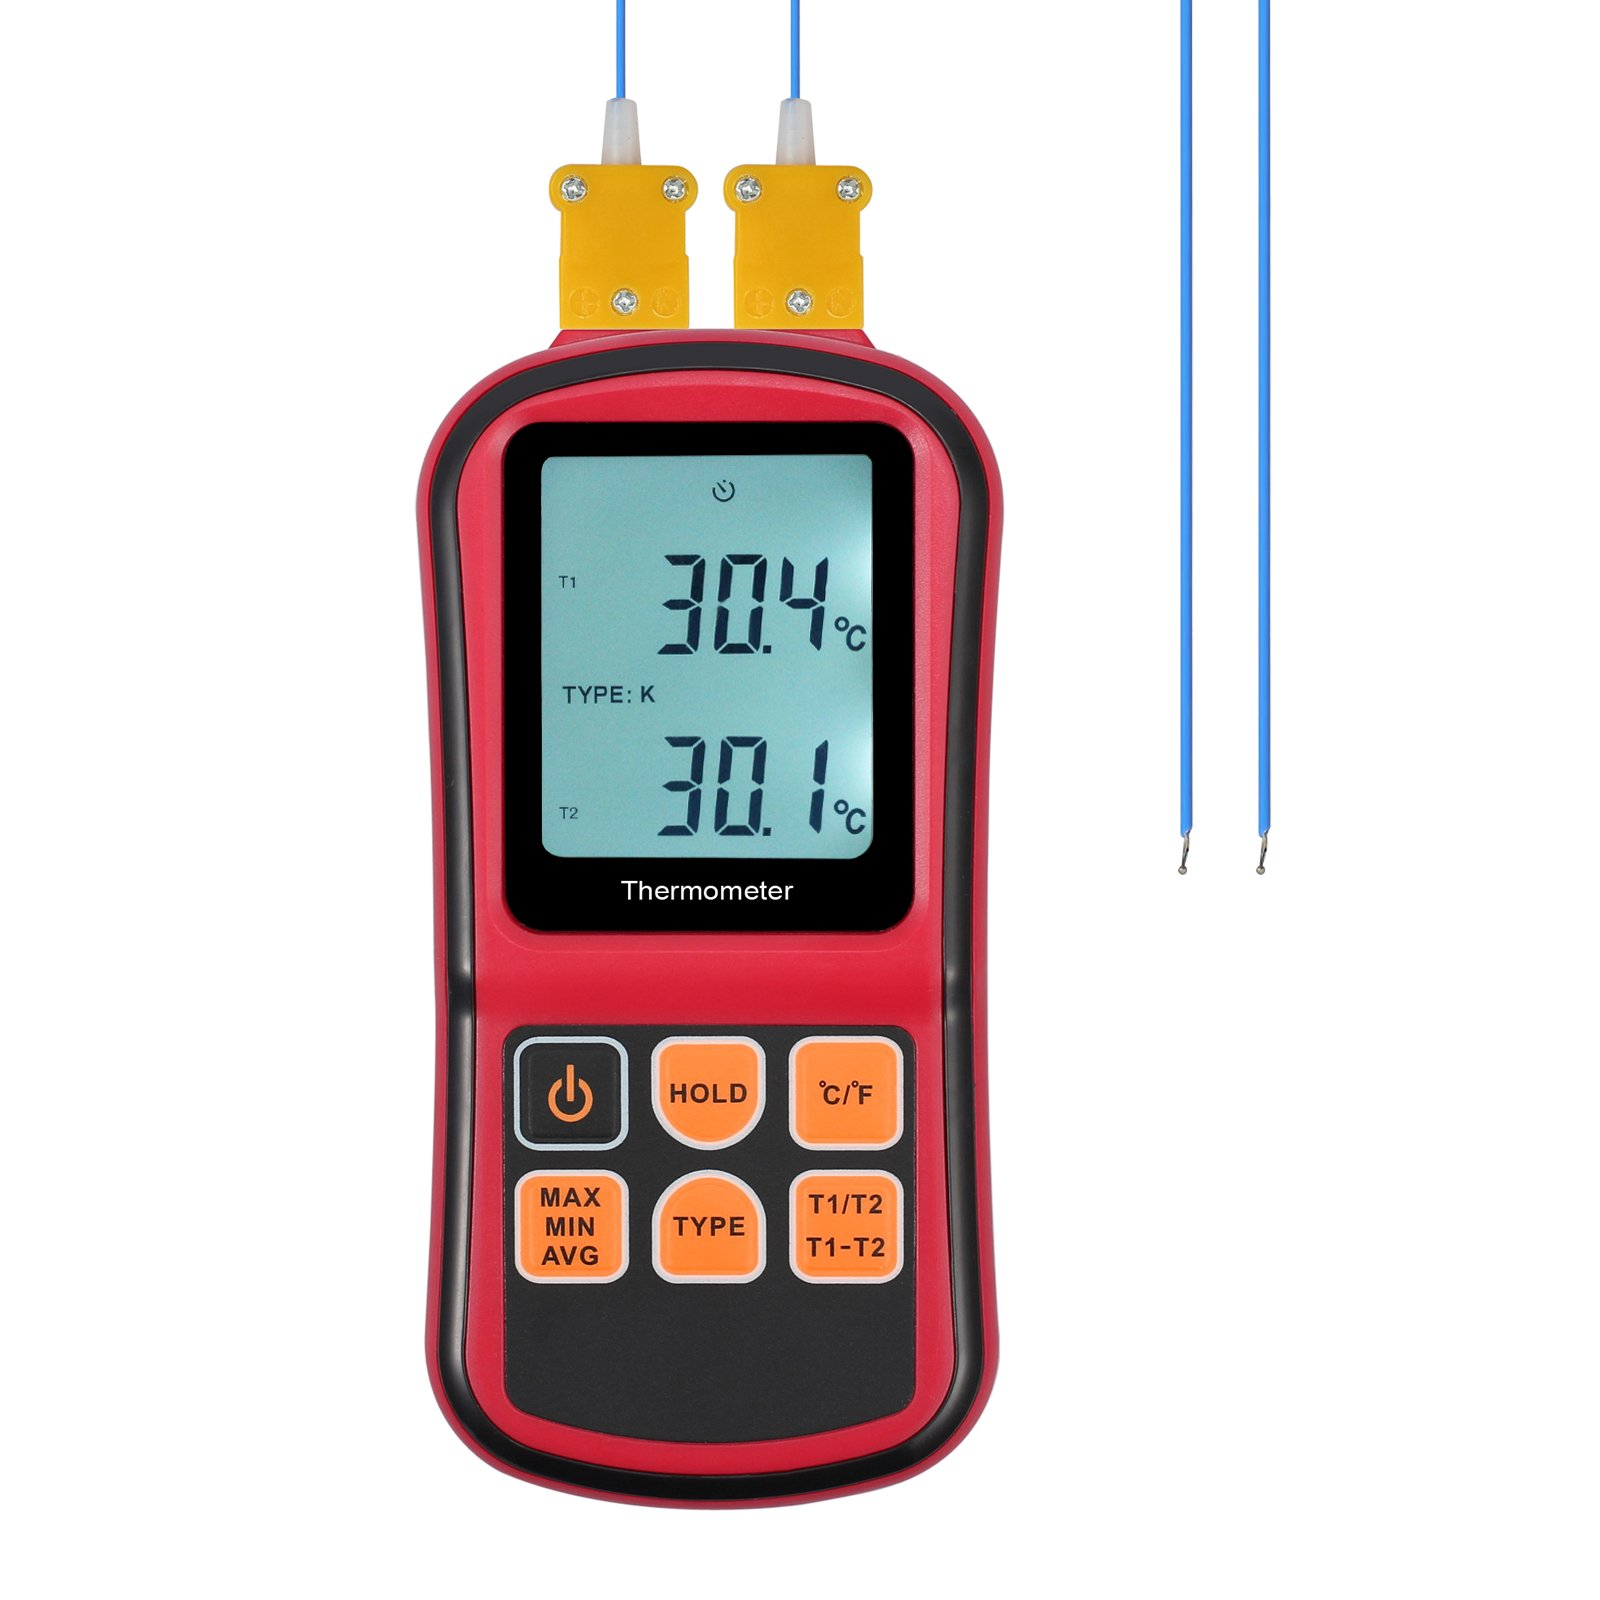 Proster Digital Thermocouple Thermometer Dual-Channel LCD Backlight Temperature Meter Tester with Two K- Type Thermocouples for K/J/T/E/R/S/N Type